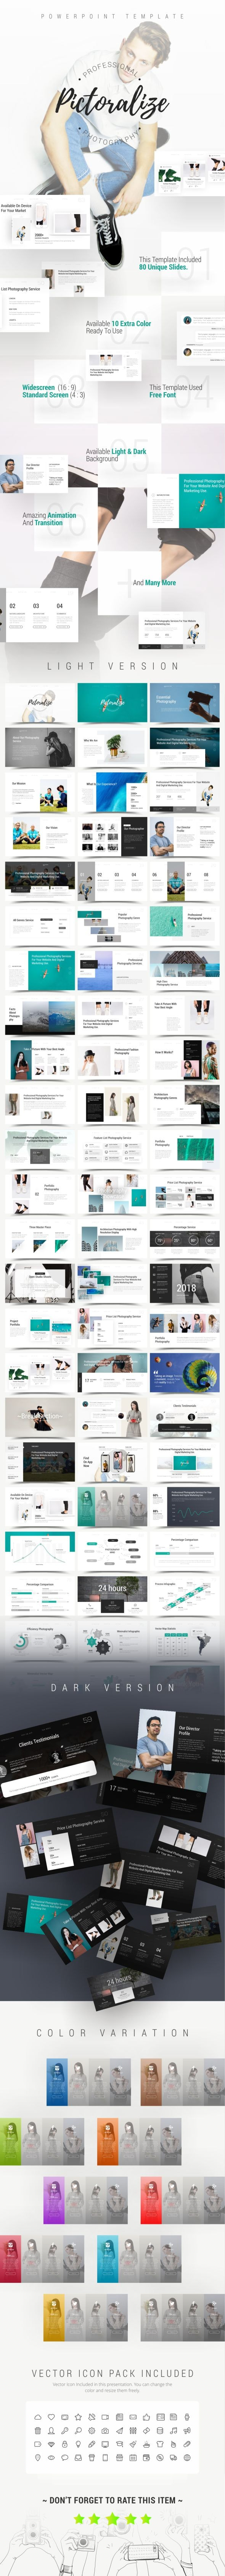 Pictoralize Photography PowerPoint Template - PowerPoint Templates Presentation Templates